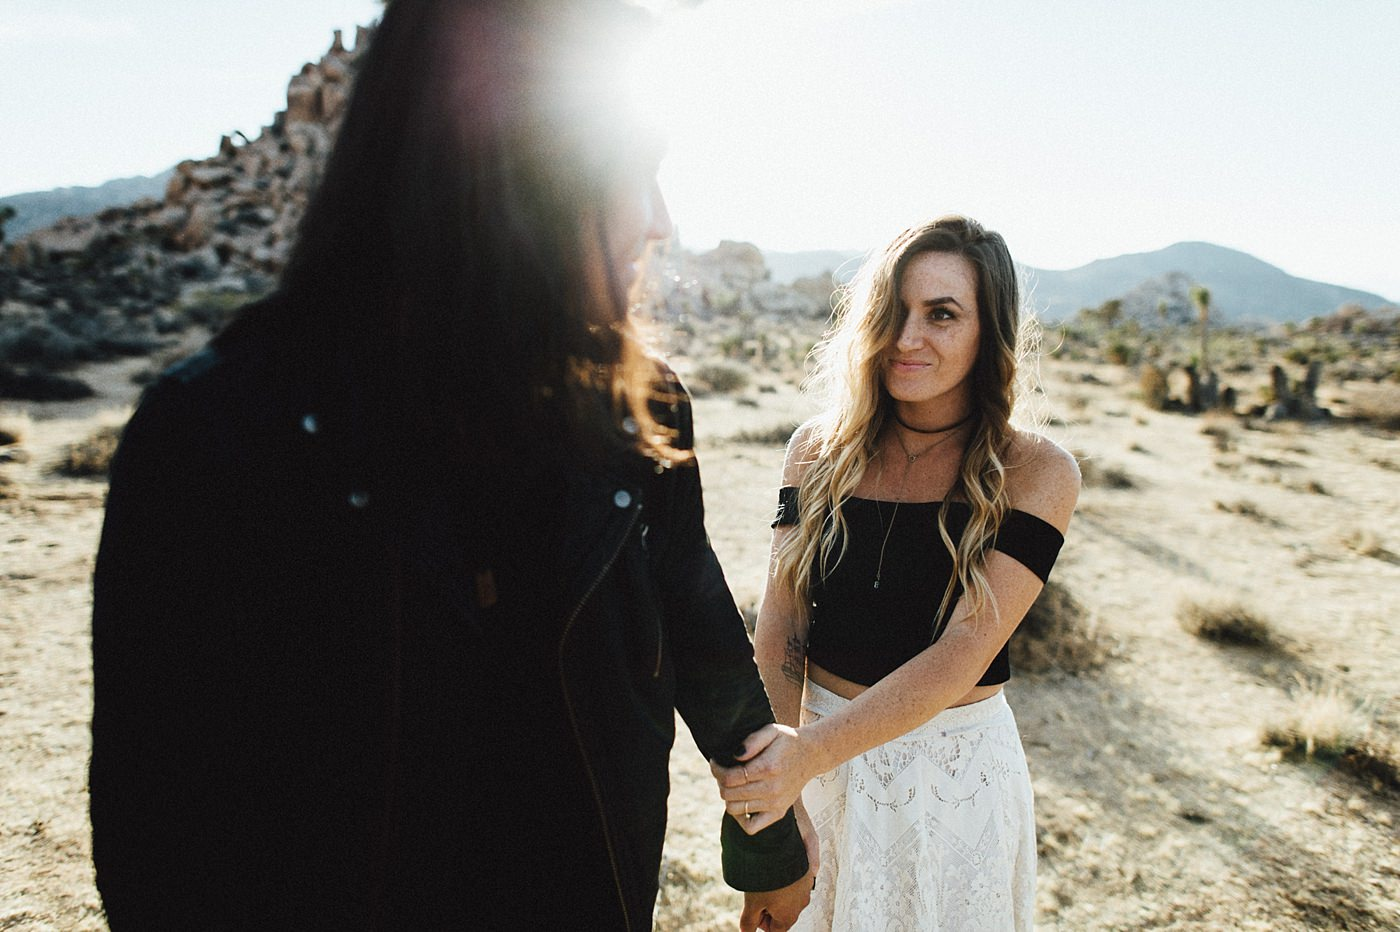 international-elopement-photographer_0159 Kinsey & Josh & Banjo Photographer in Joshuatreeinternational elopement photographer 0159